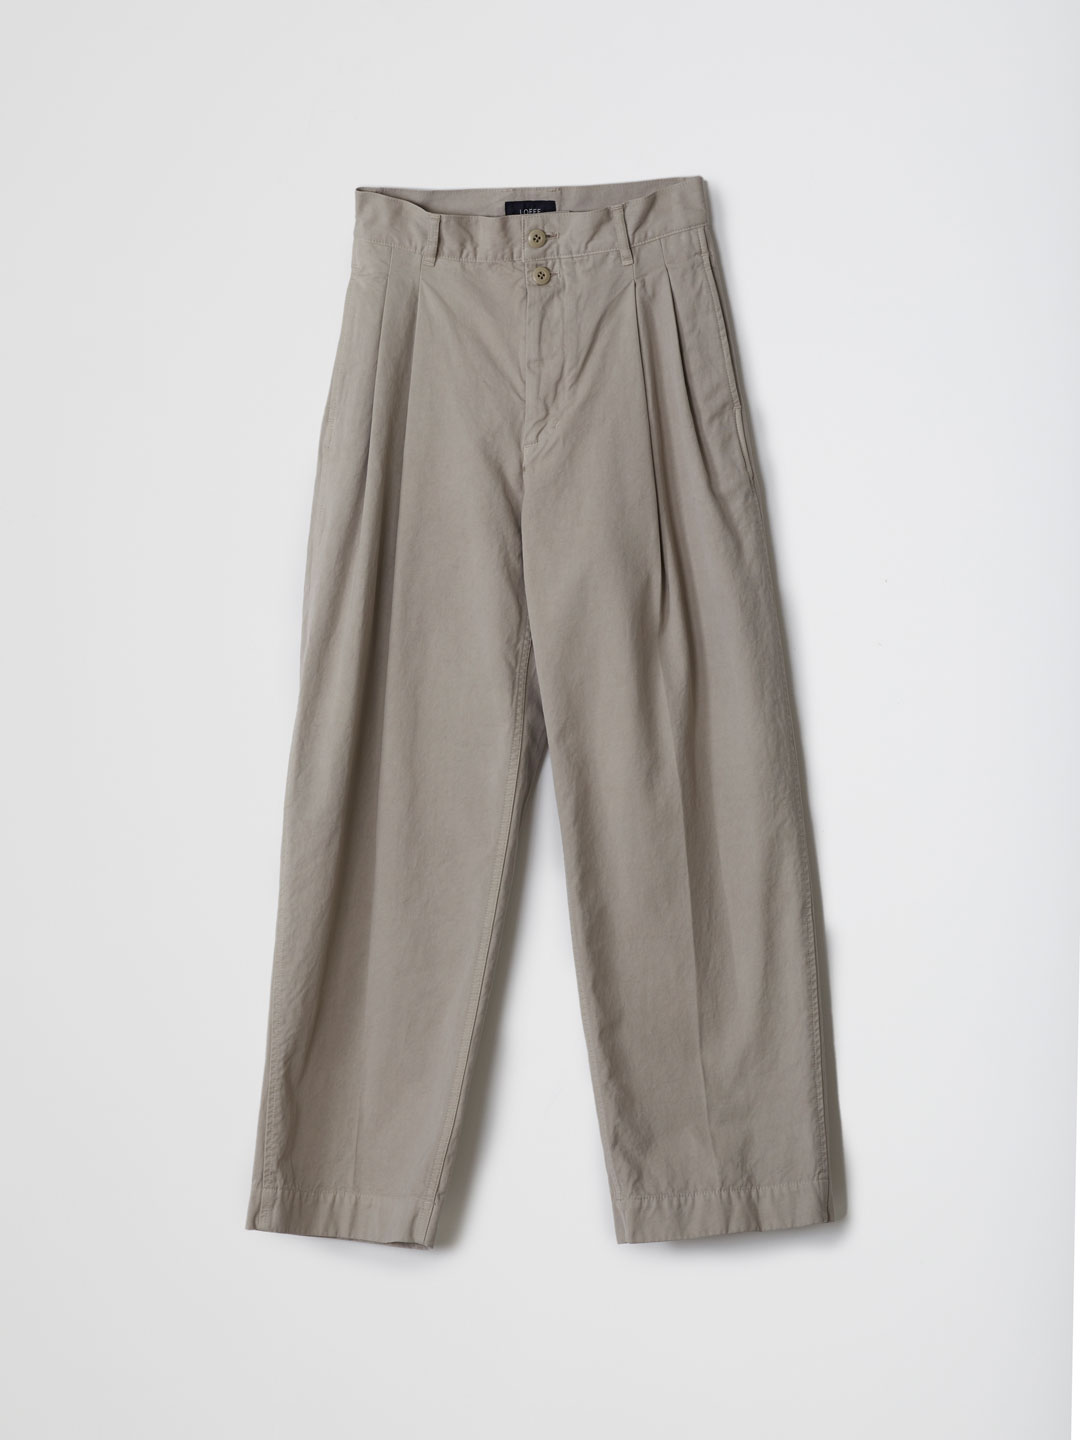 Cotton Twill 2 Tuck Pants - Beige